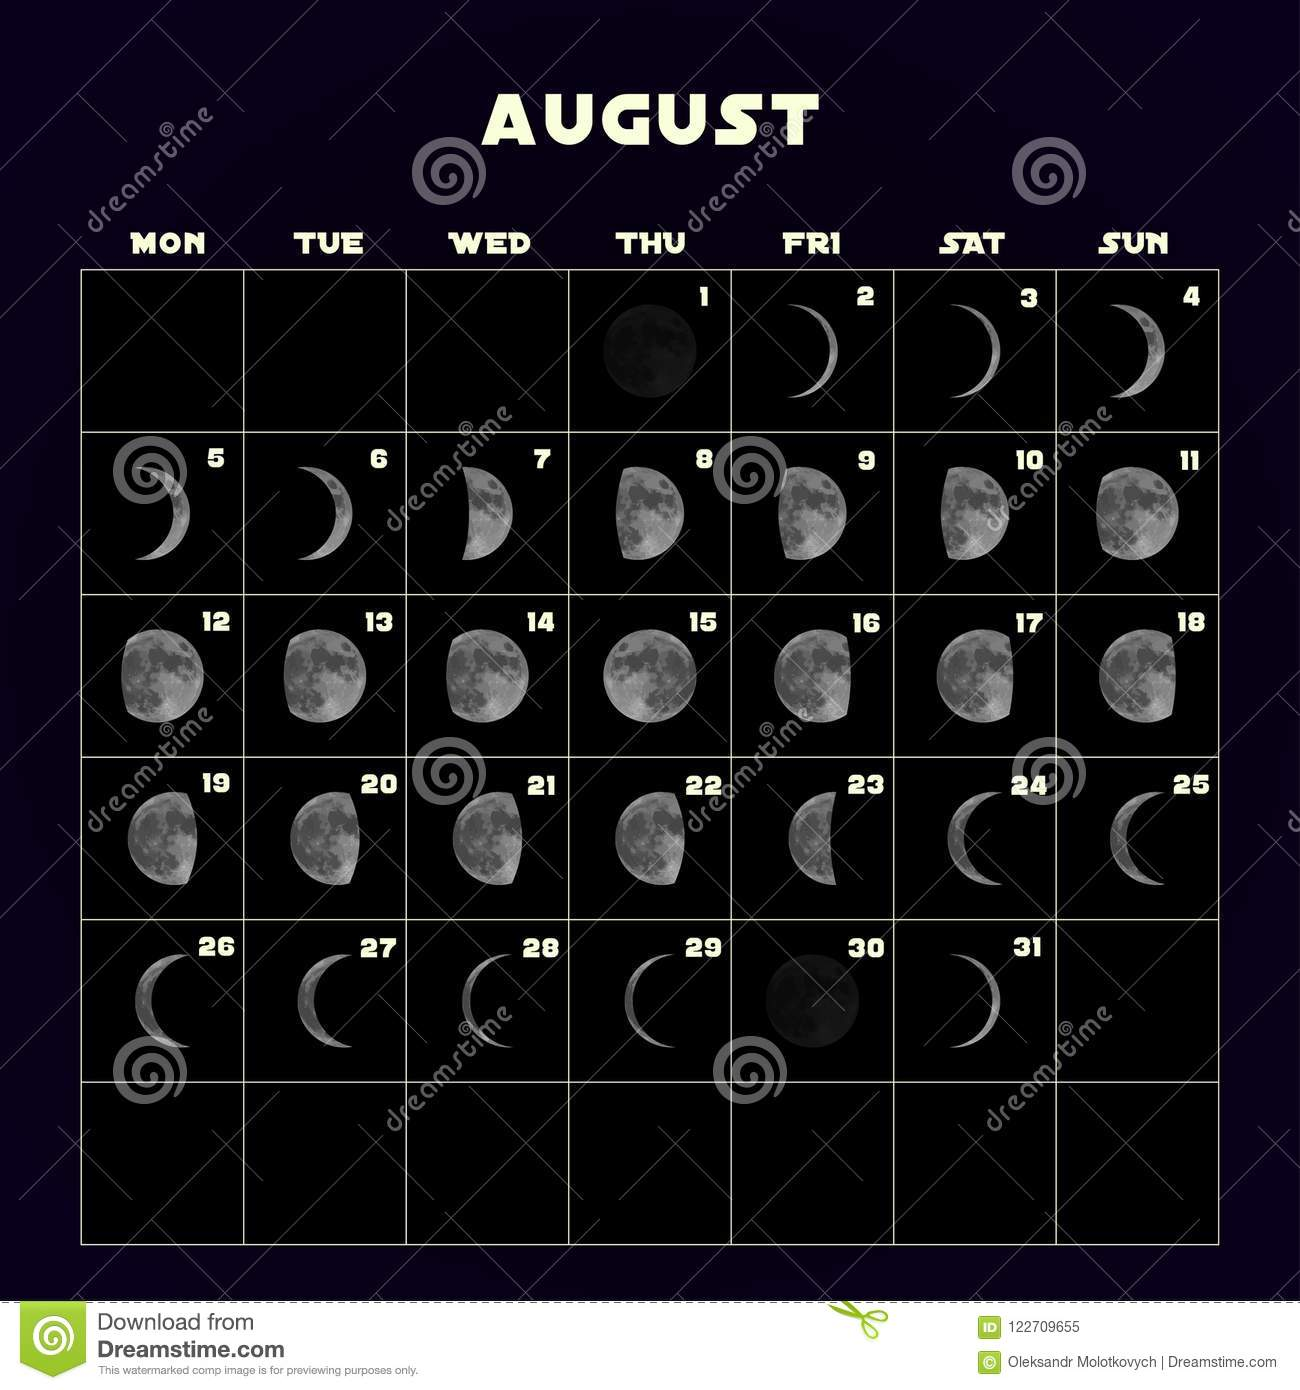 Full Moon August 2019: Moon Phases Calendar For 2019 With Realistic Moon. August